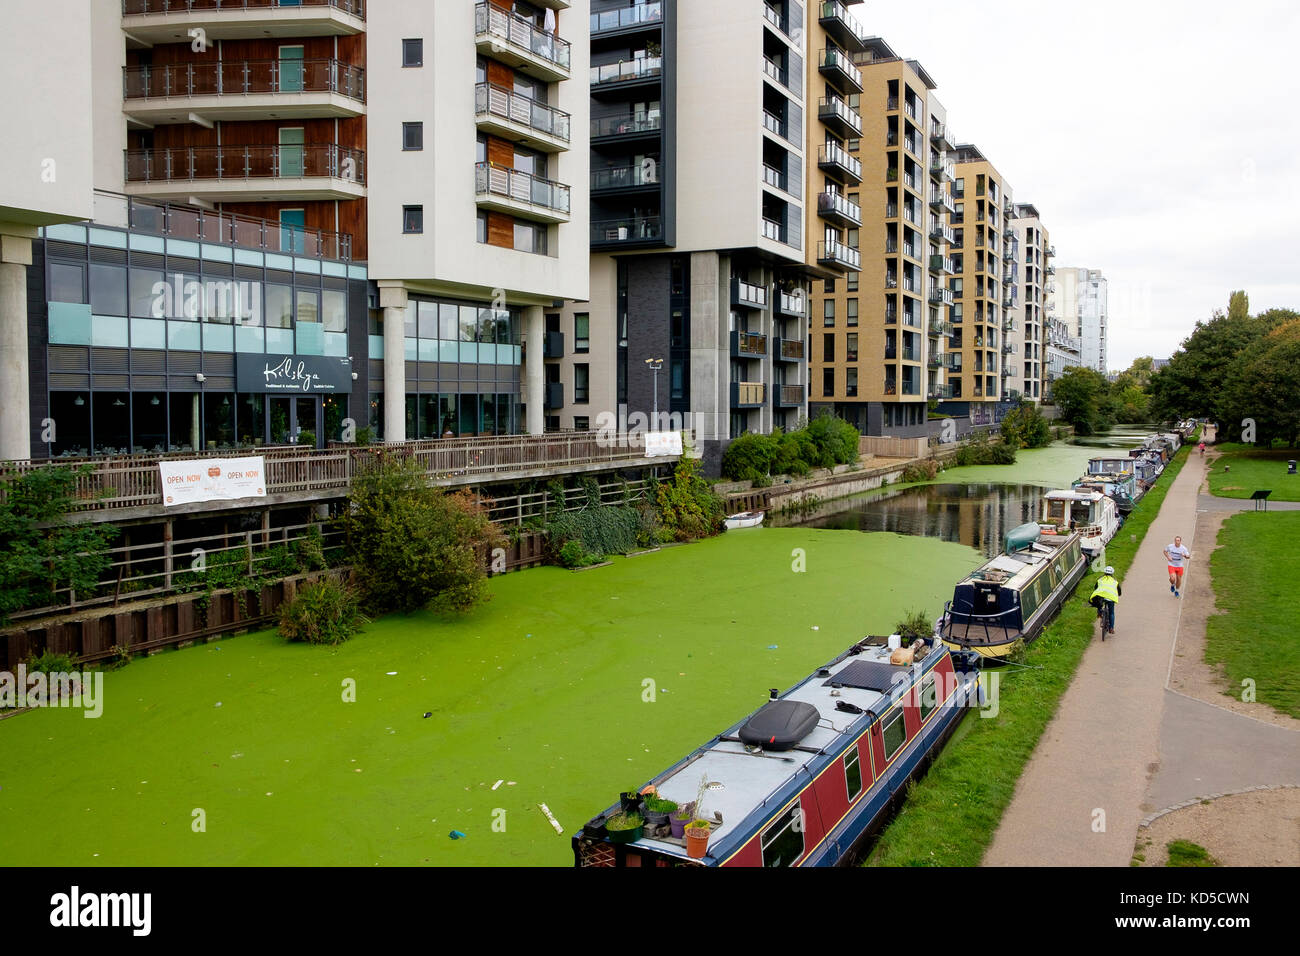 Flats and apartment buildings of Globe Town, Tower Hamlets overlooking the Regents Canal, East London - Stock Image